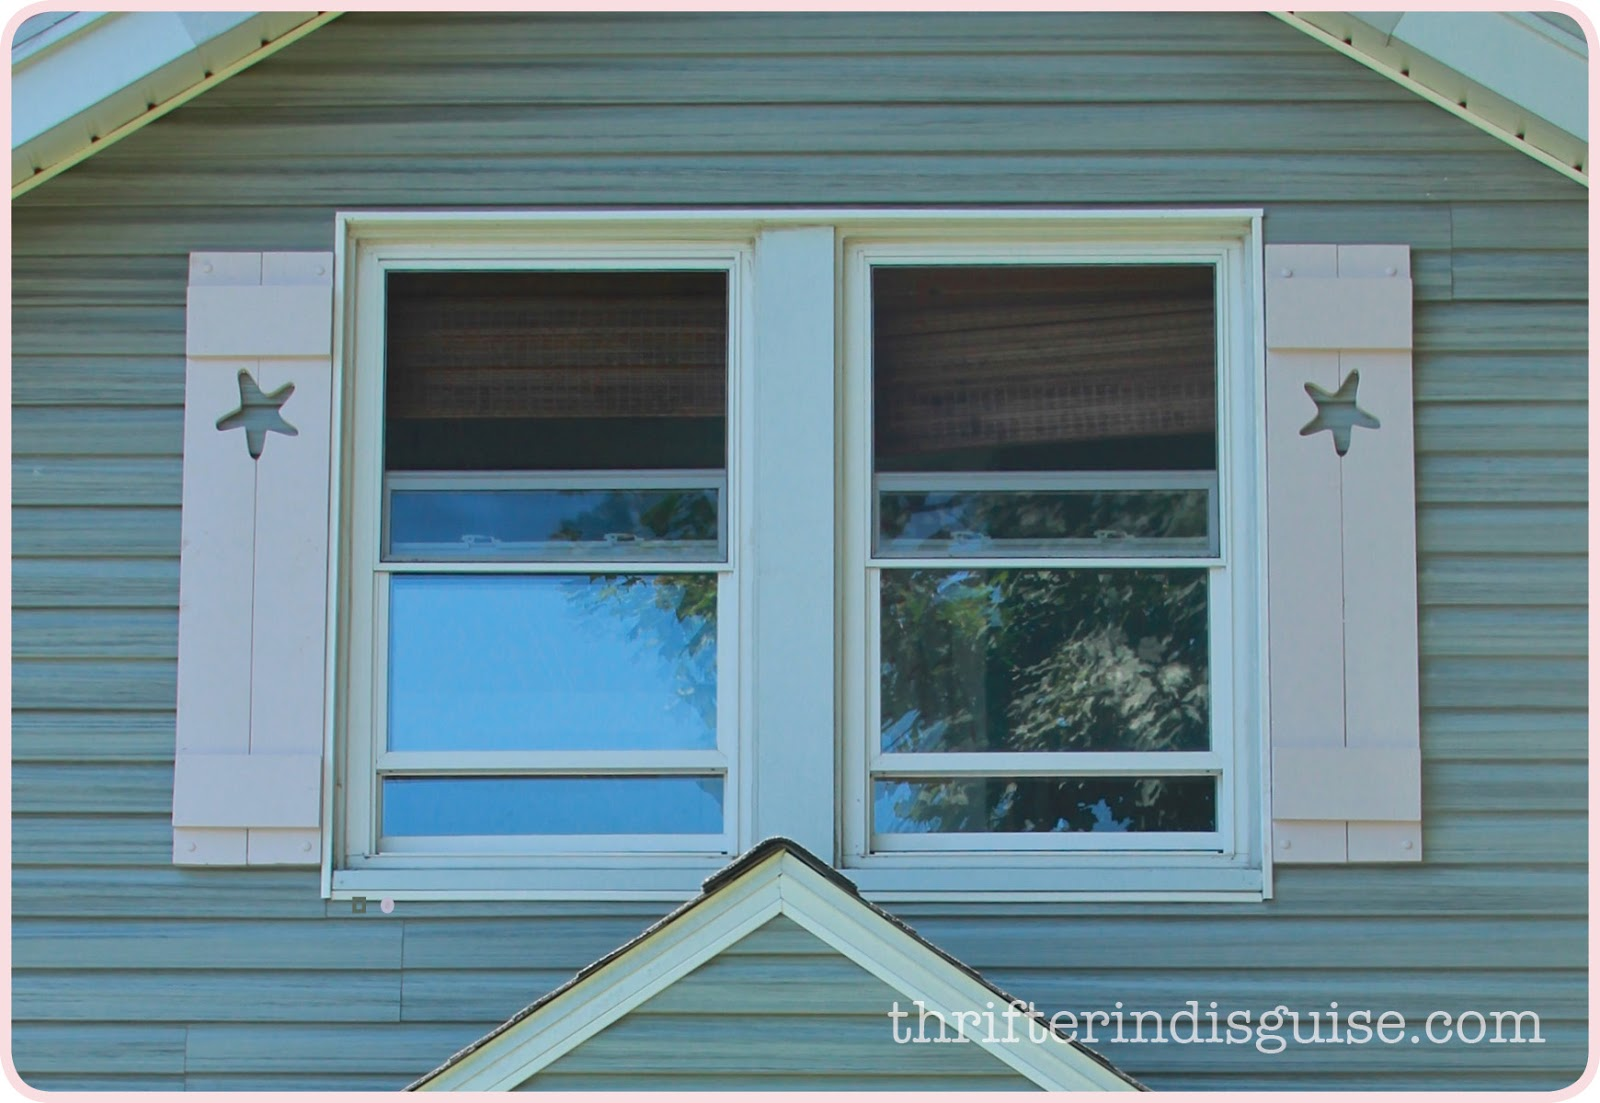 A Thrifter In Disguise Diy Custom Wood Cape Cod Style Shutters